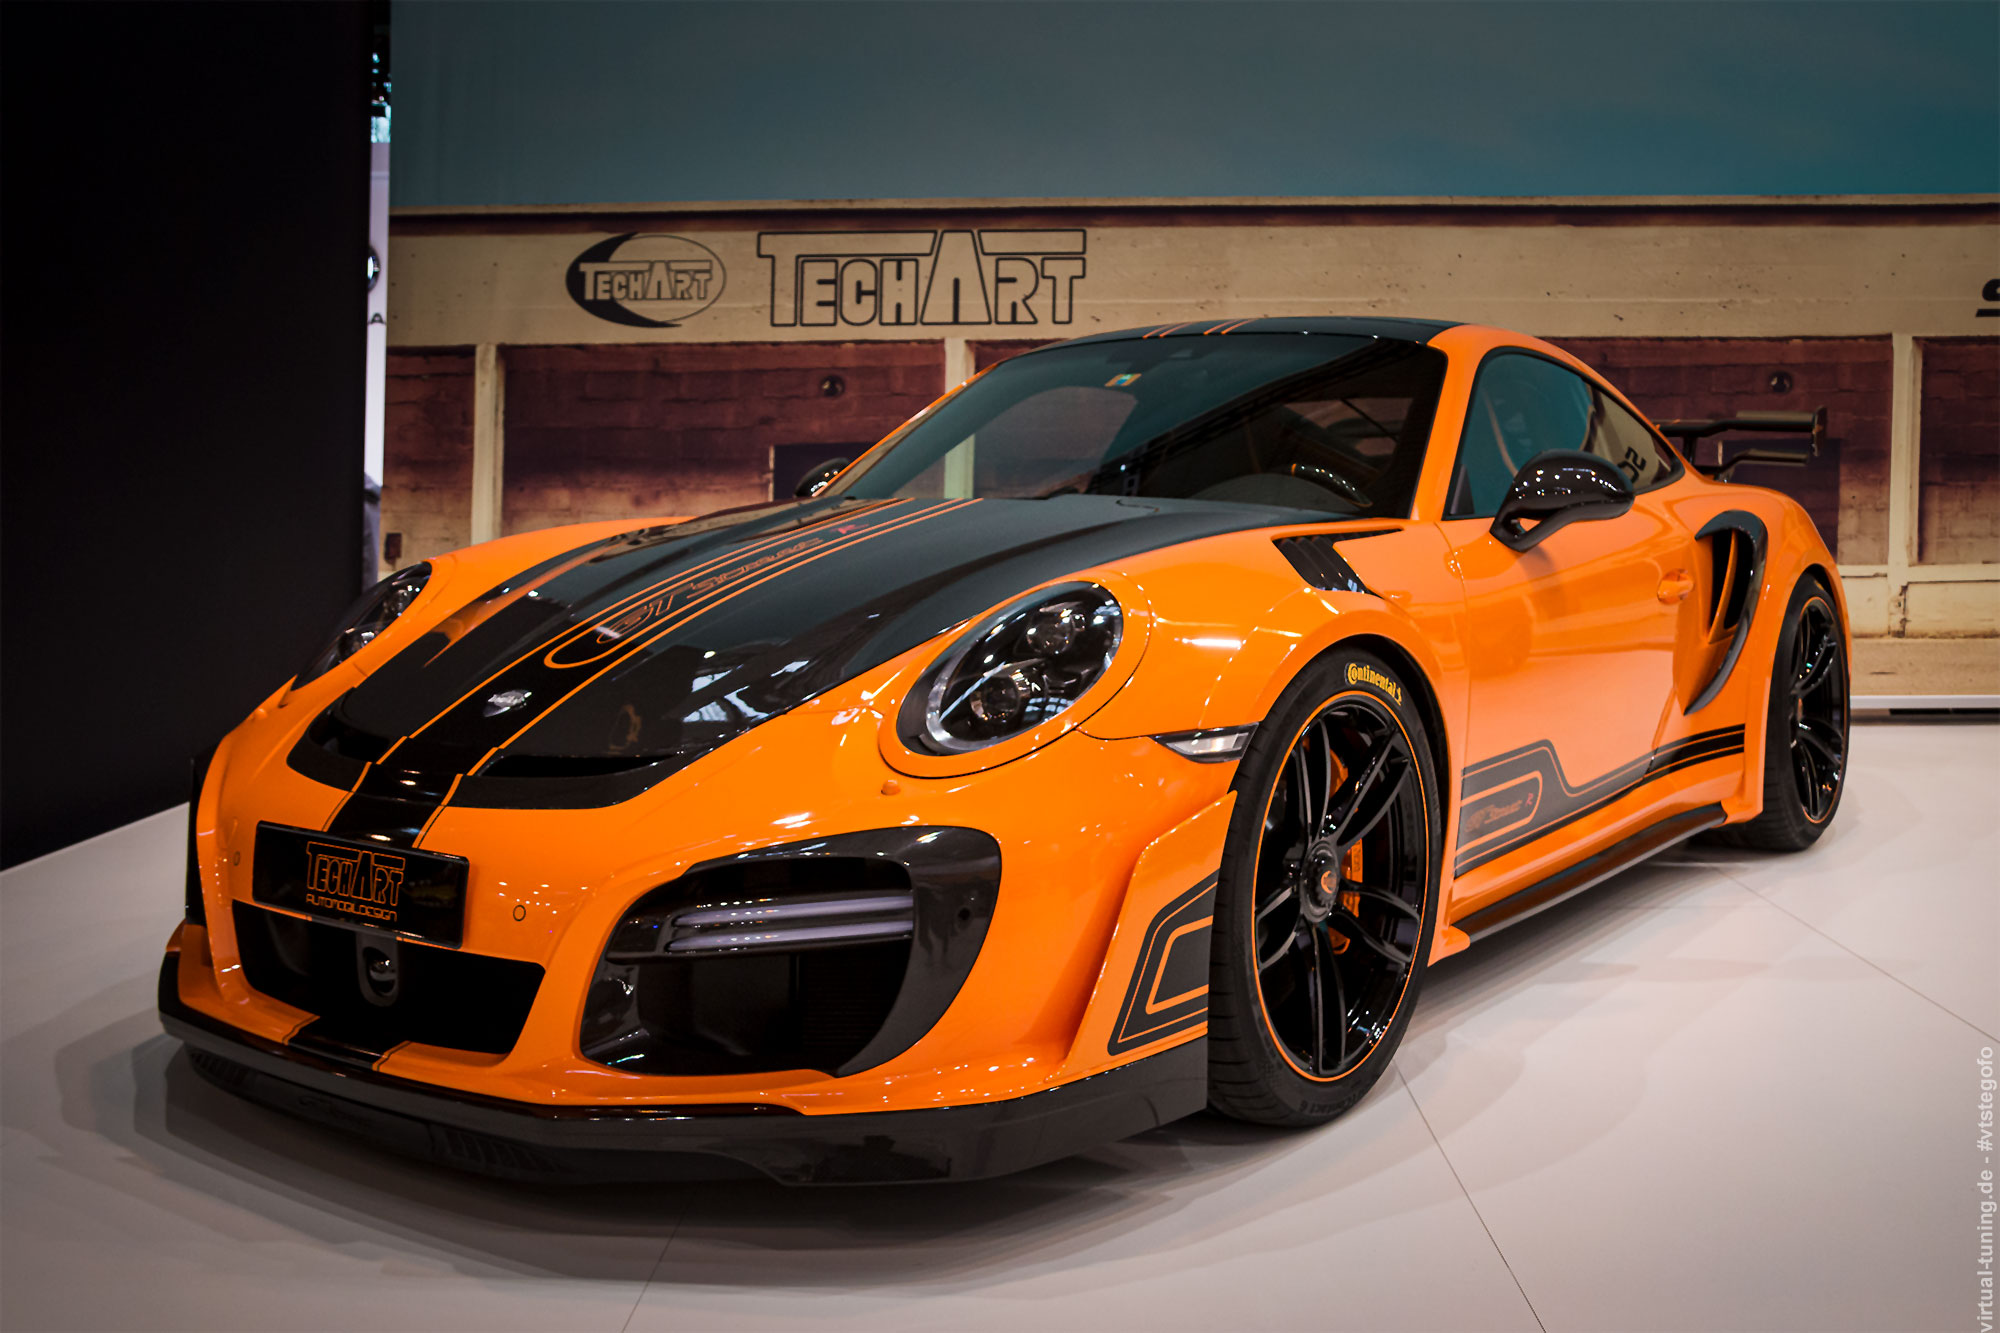 Techart GTstreet R (Porsche 911 Turbo S) - Essen Motor Show 2018